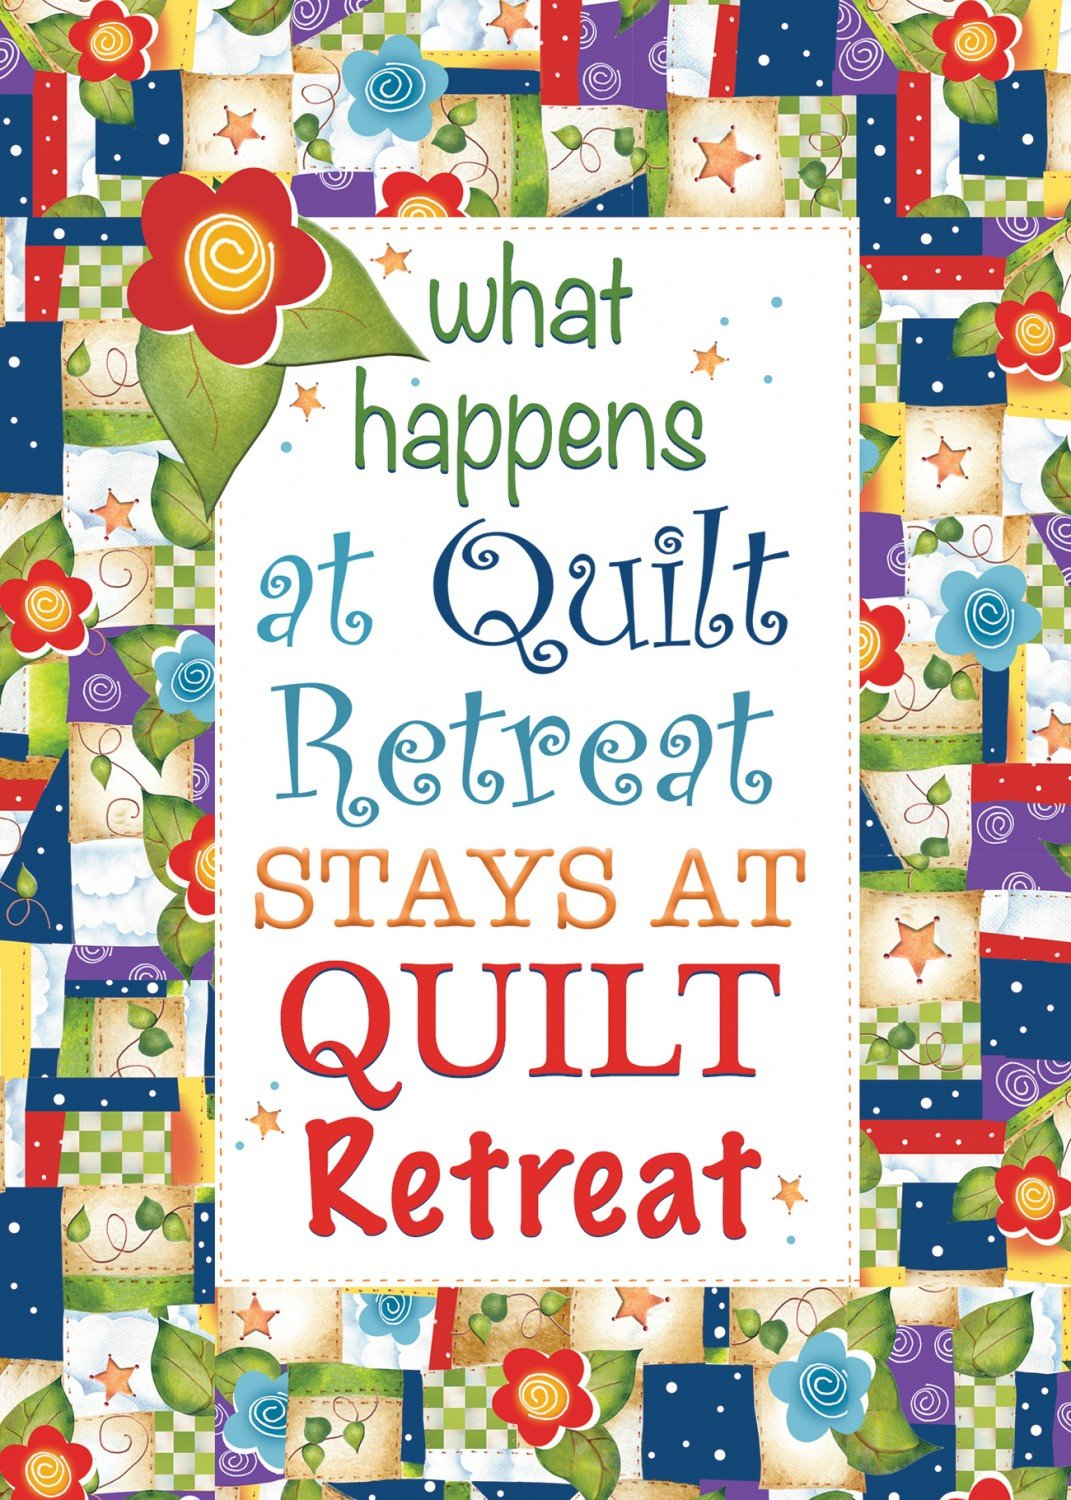 Quilt Retreat Greeting Card